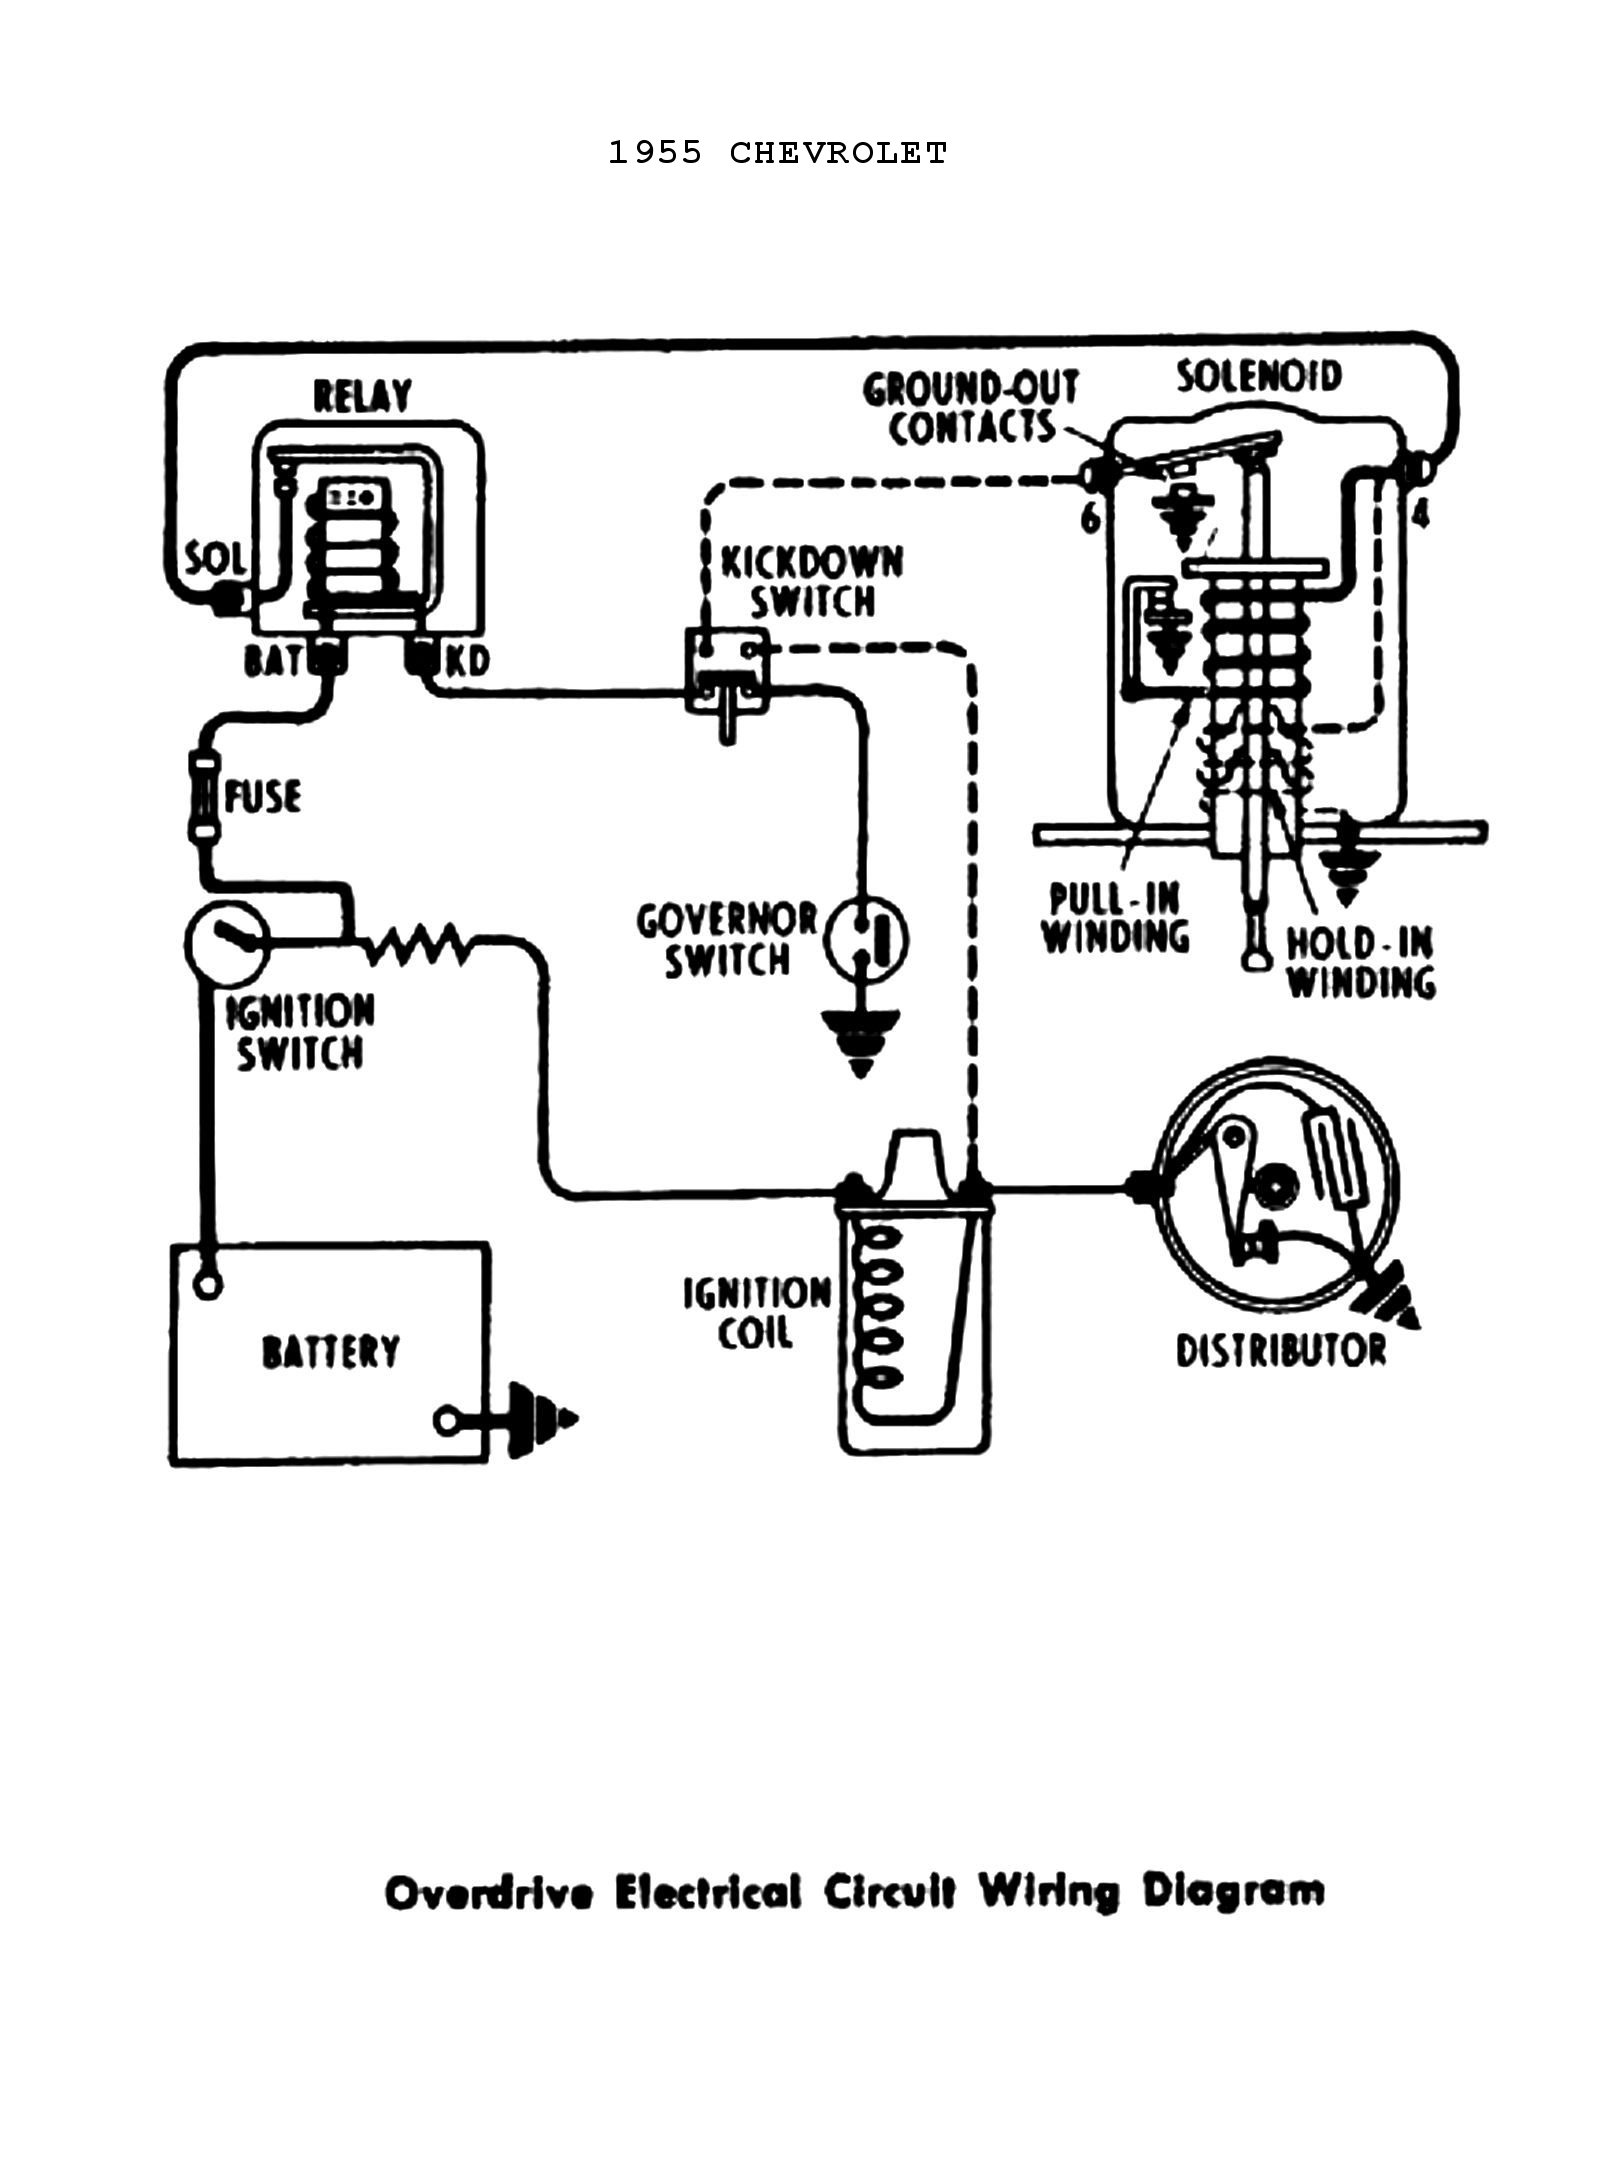 Chevy wiring diagrams 1955 power windows seats 1955 overdrive circuit publicscrutiny Image collections